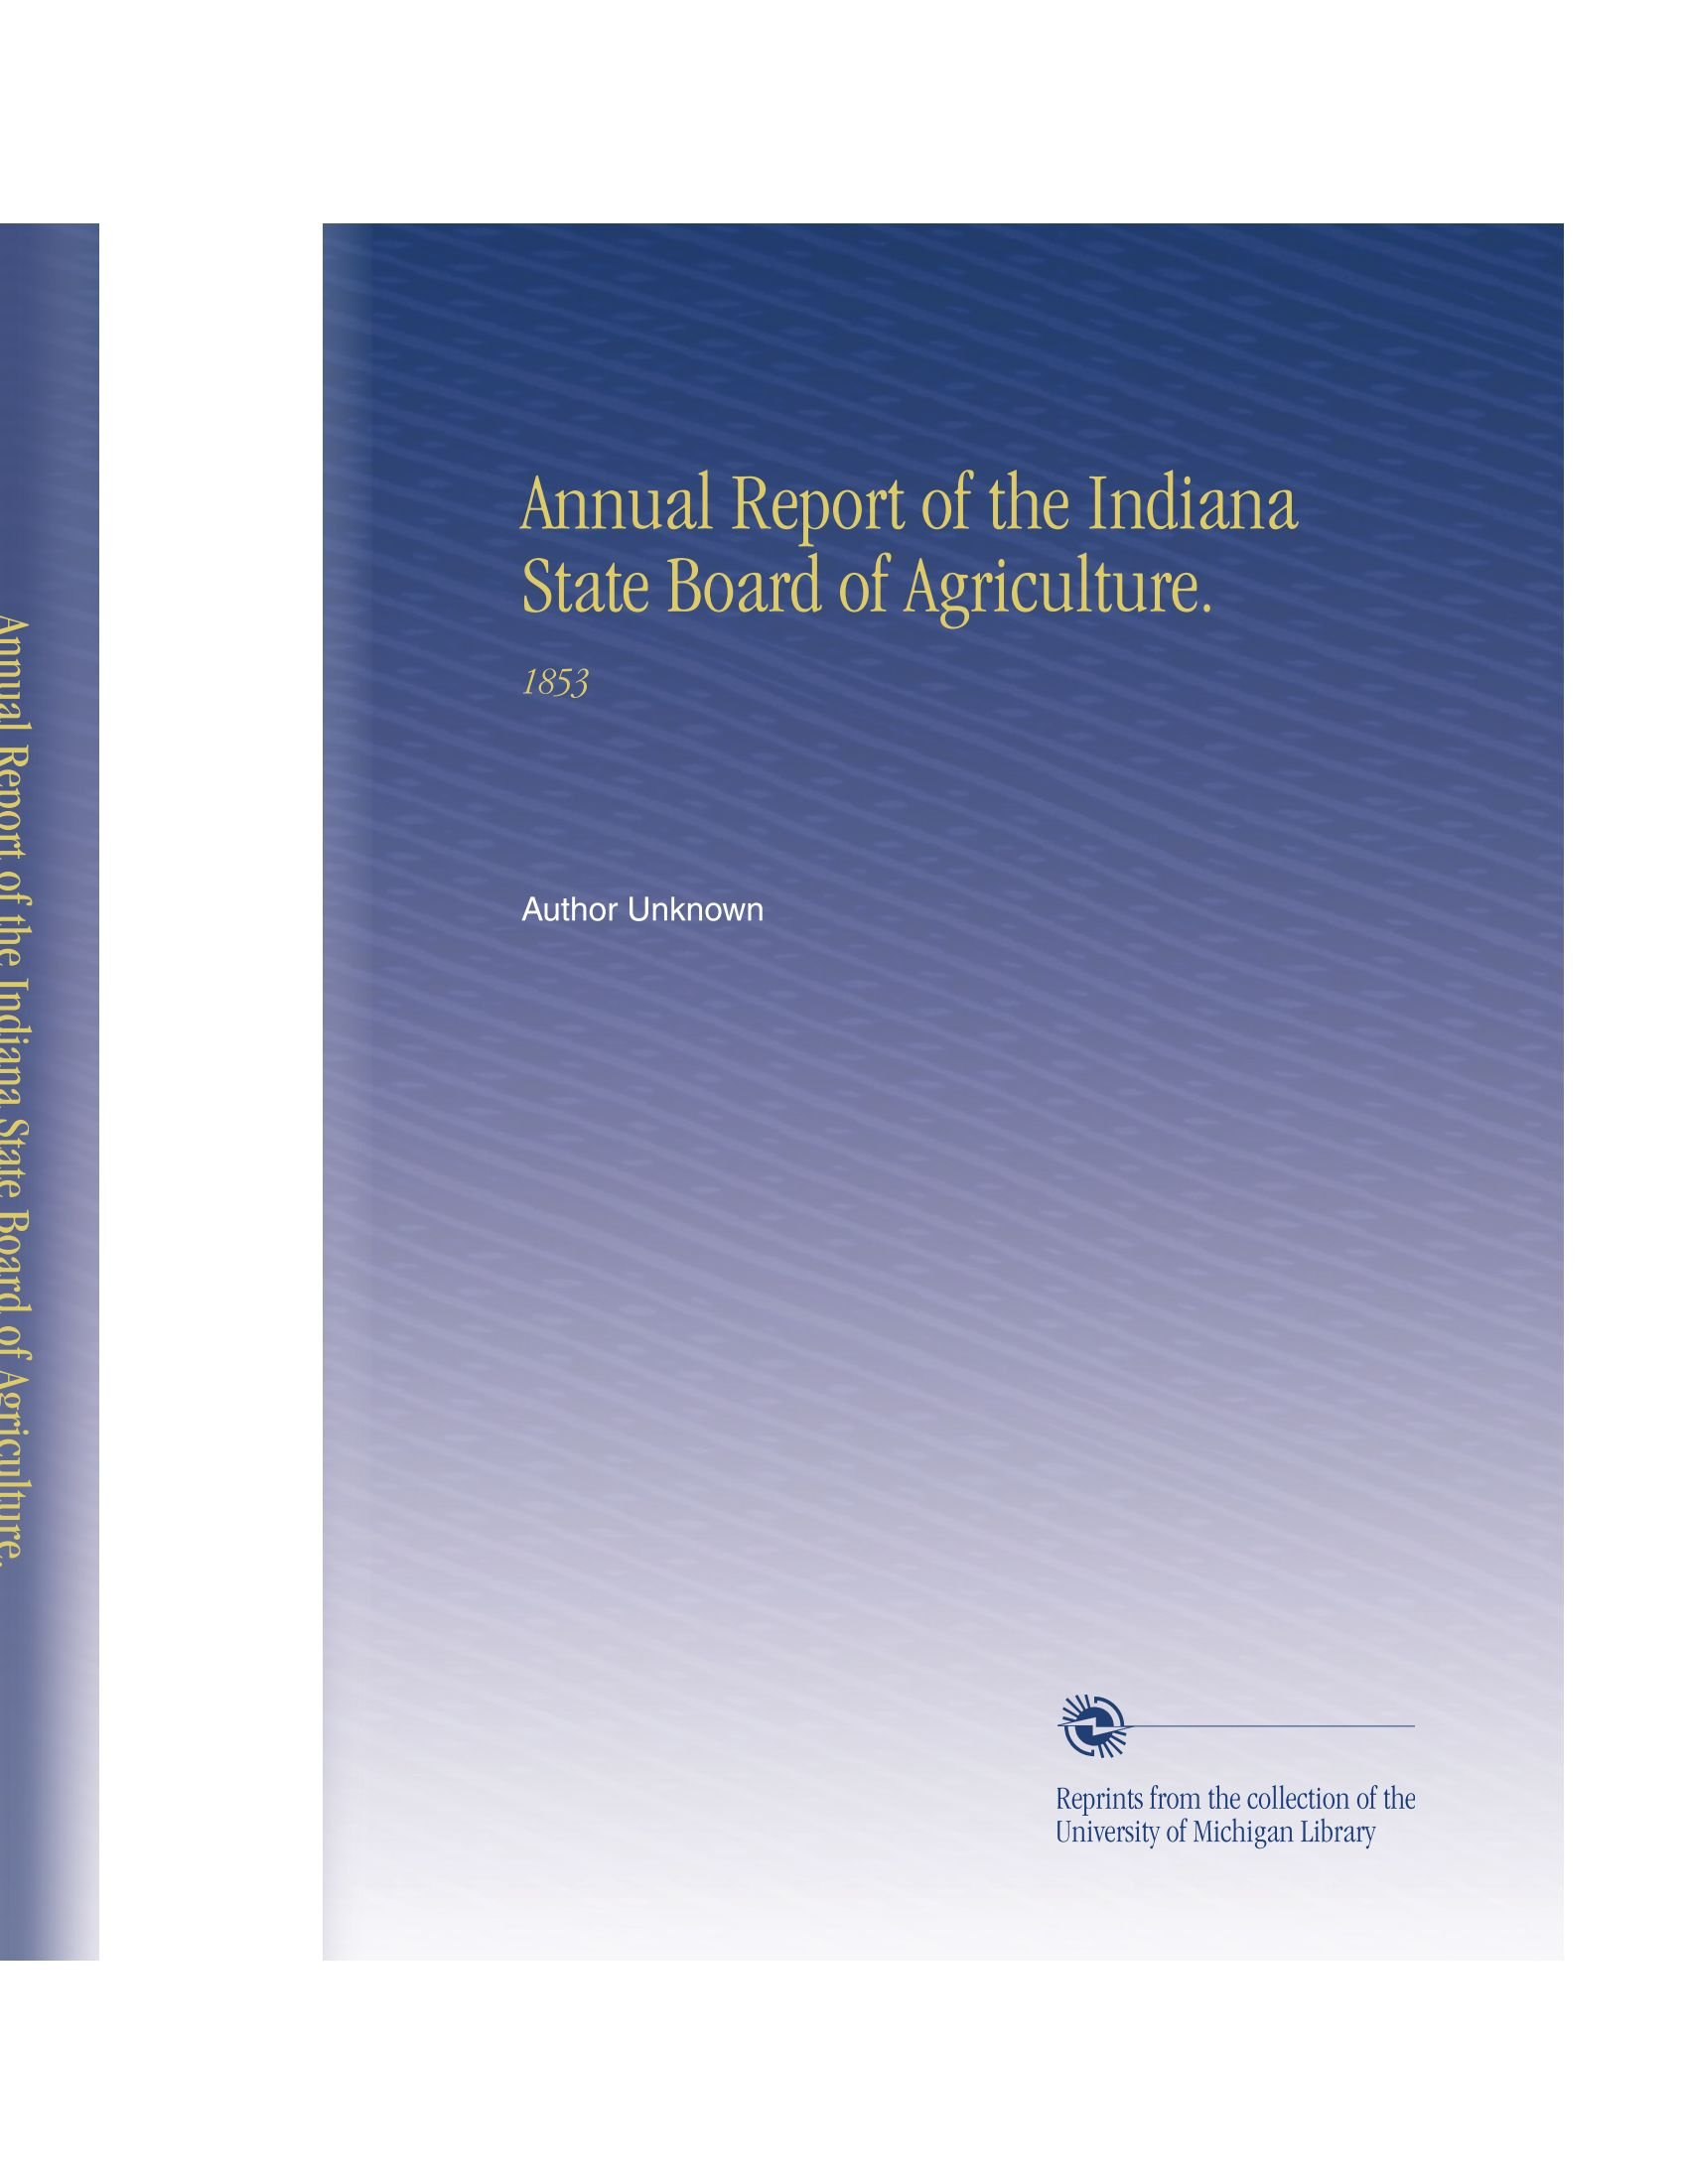 Annual Report of the Indiana State Board of Agriculture.: 1853 pdf